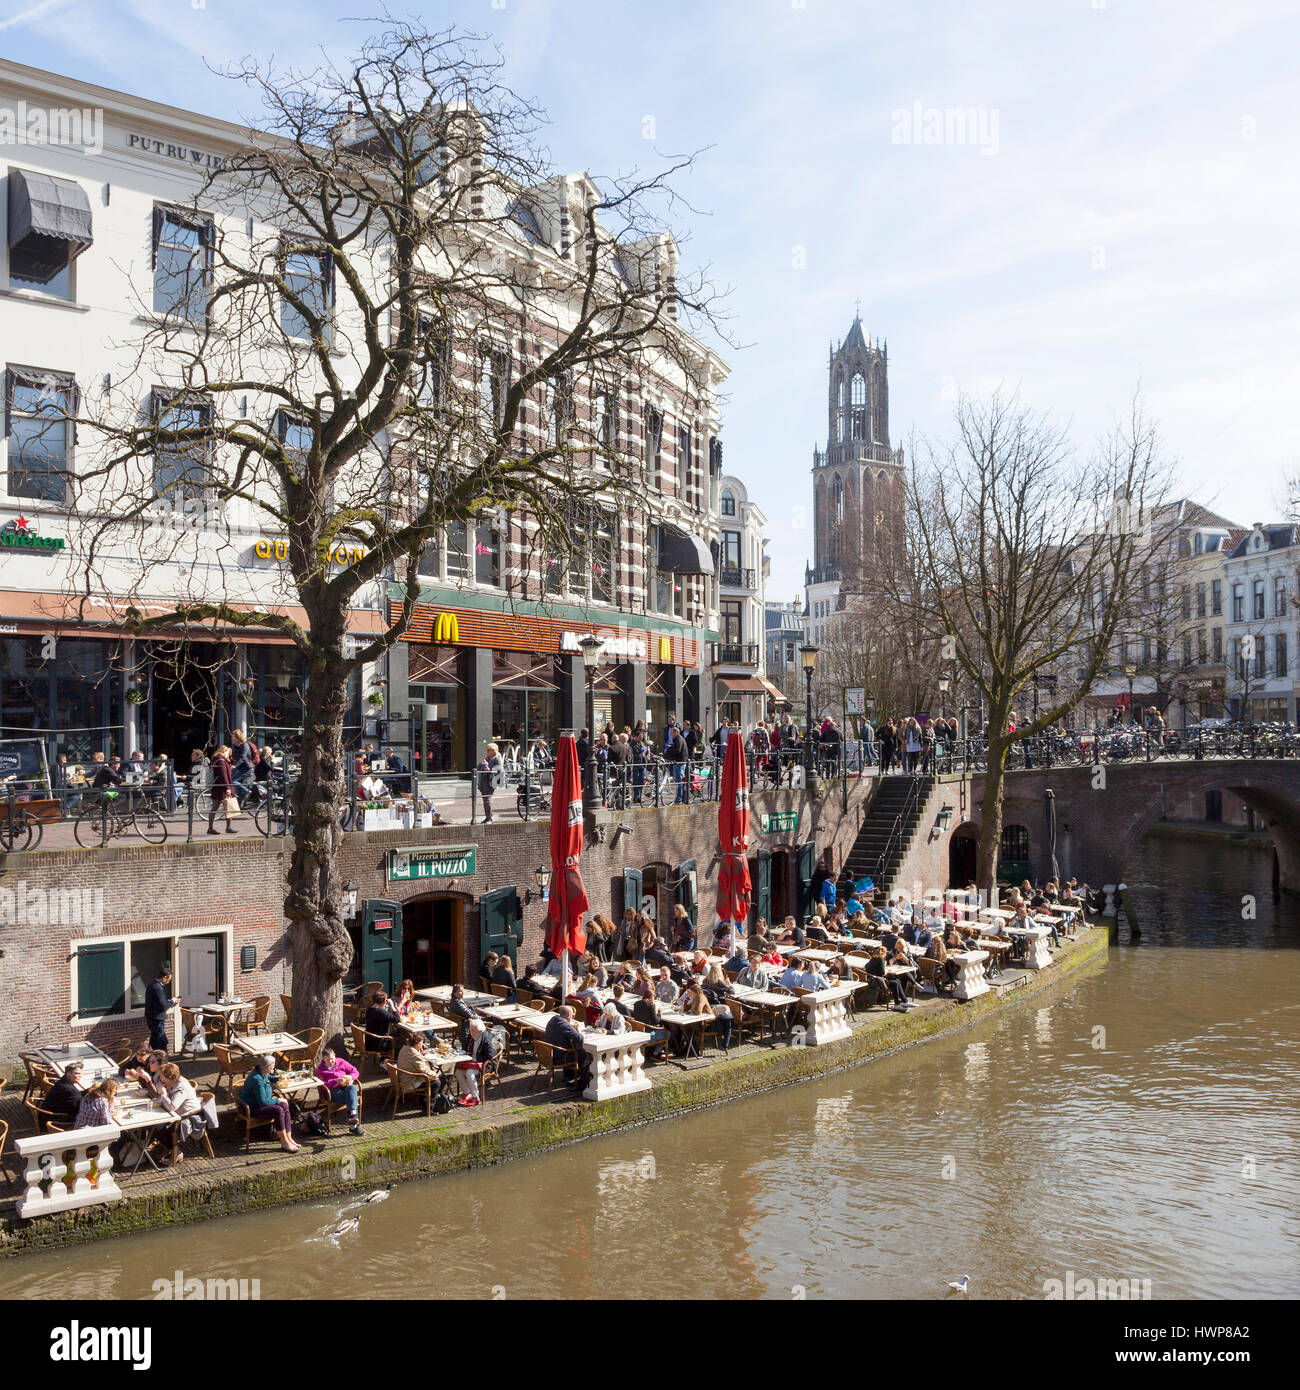 utrecht, netherlands, 15 march 2017: people enjoy sunny day in